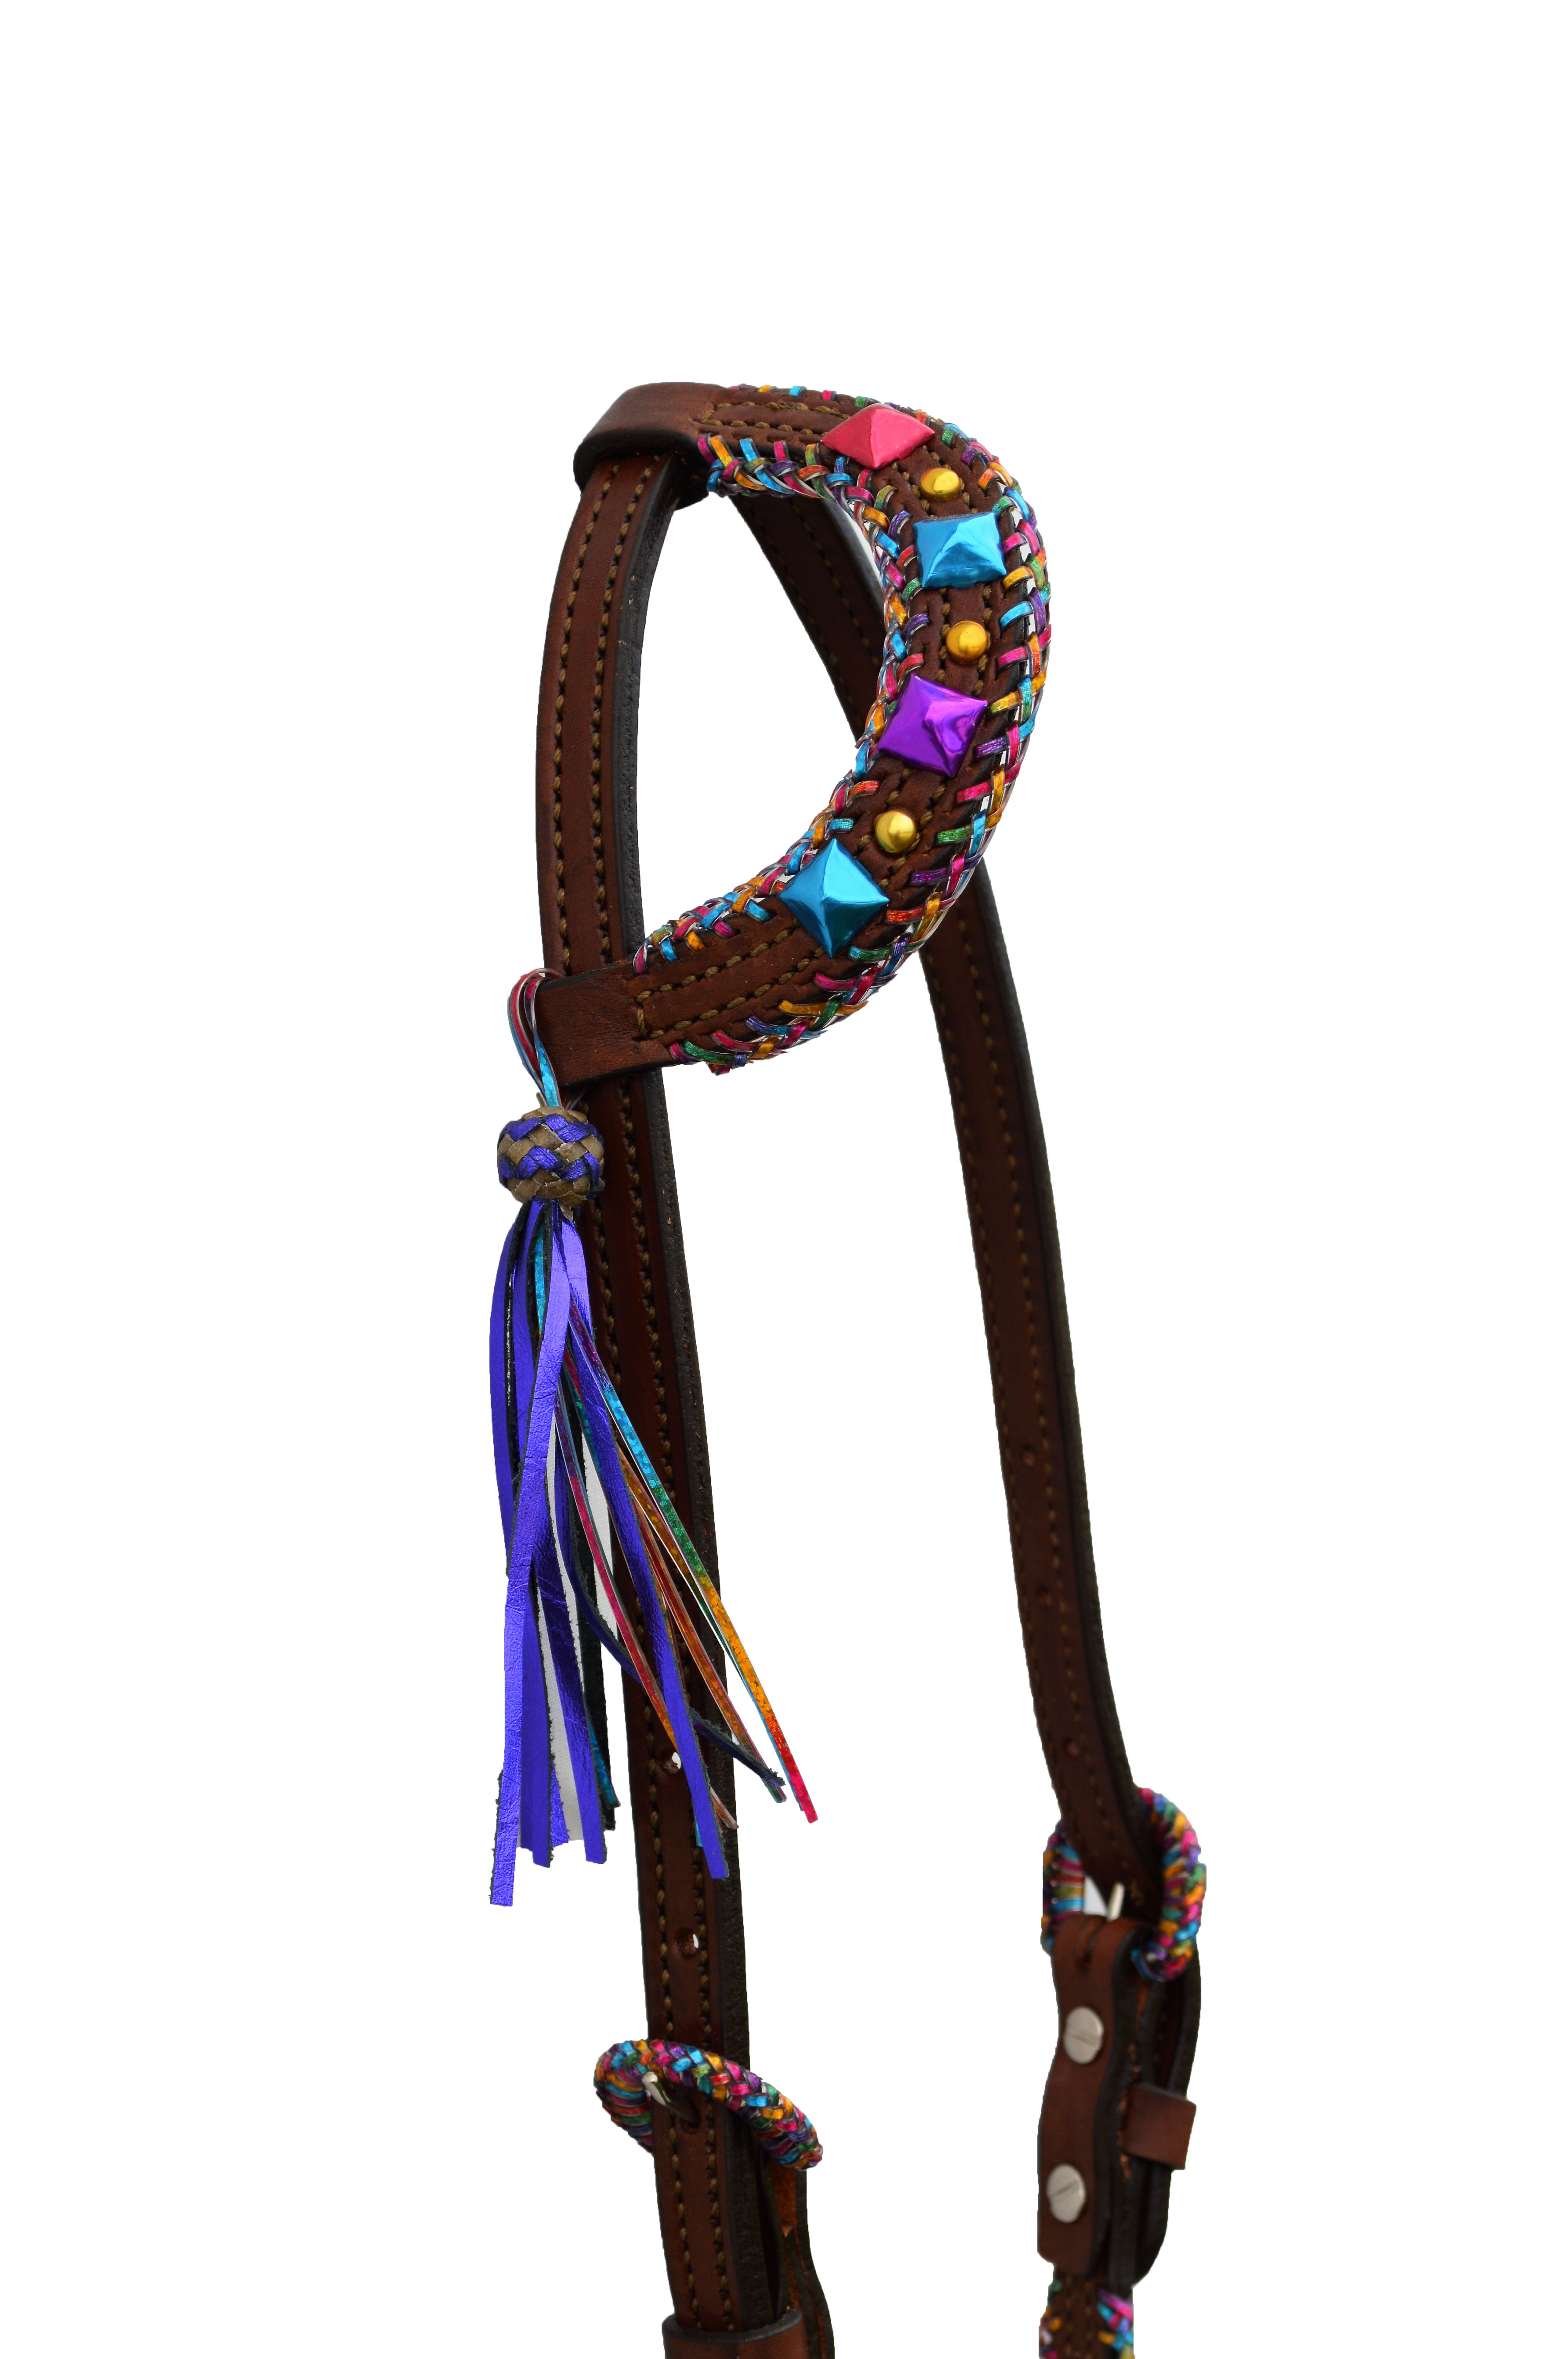 2670-TTD ONE EAR HEADSTALL WITH FIESTA BRAIDING AND SPOTTING